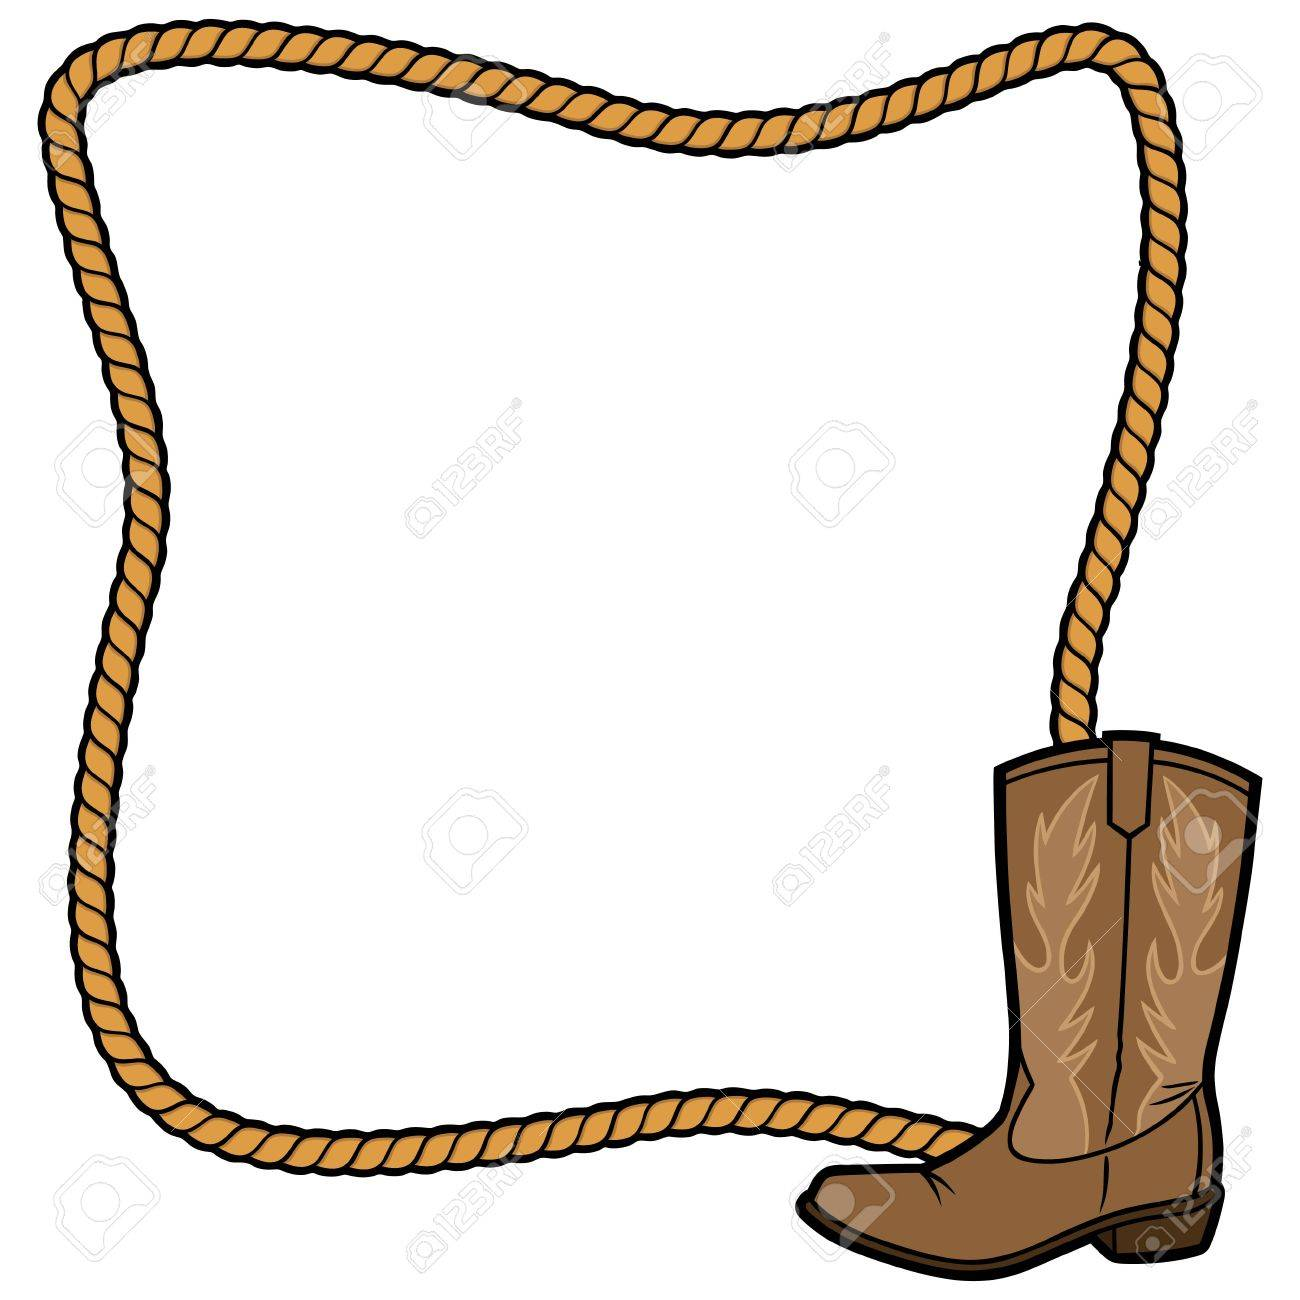 Rope Frame and Cowboy Boot - 57875023